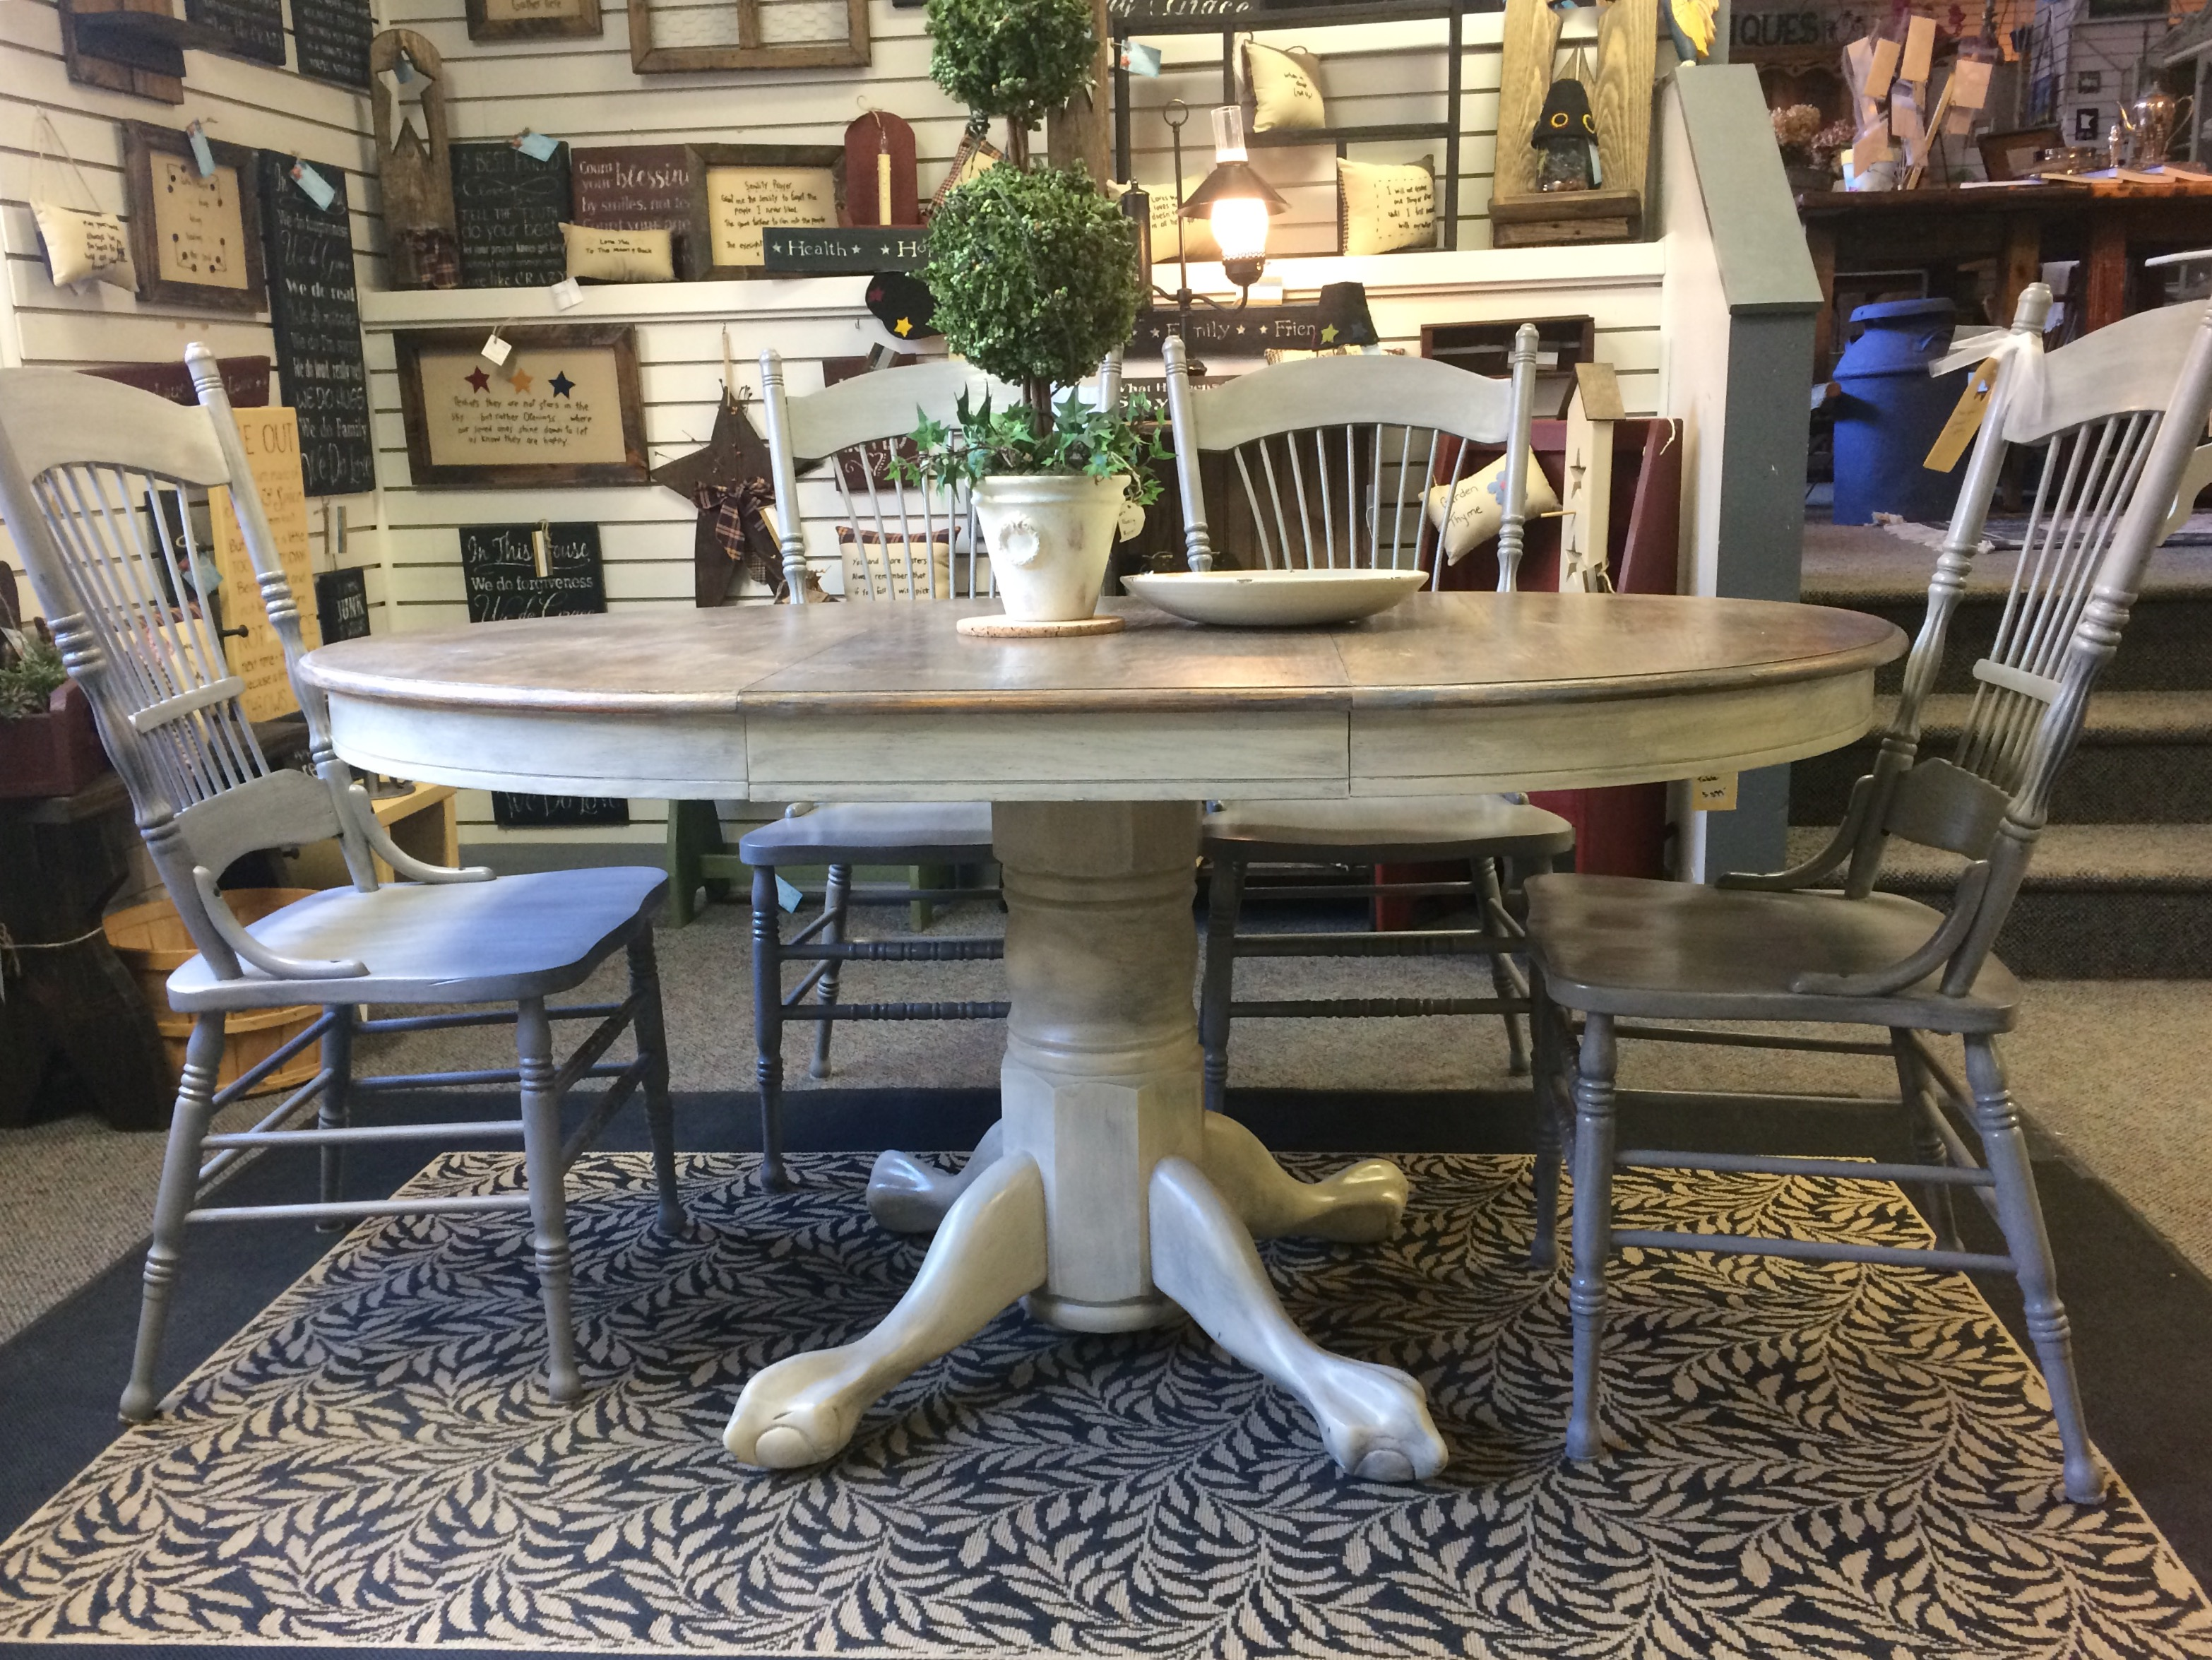 Lester River Trading Co | Unique Furniture, Antiques, Homemade Gifts